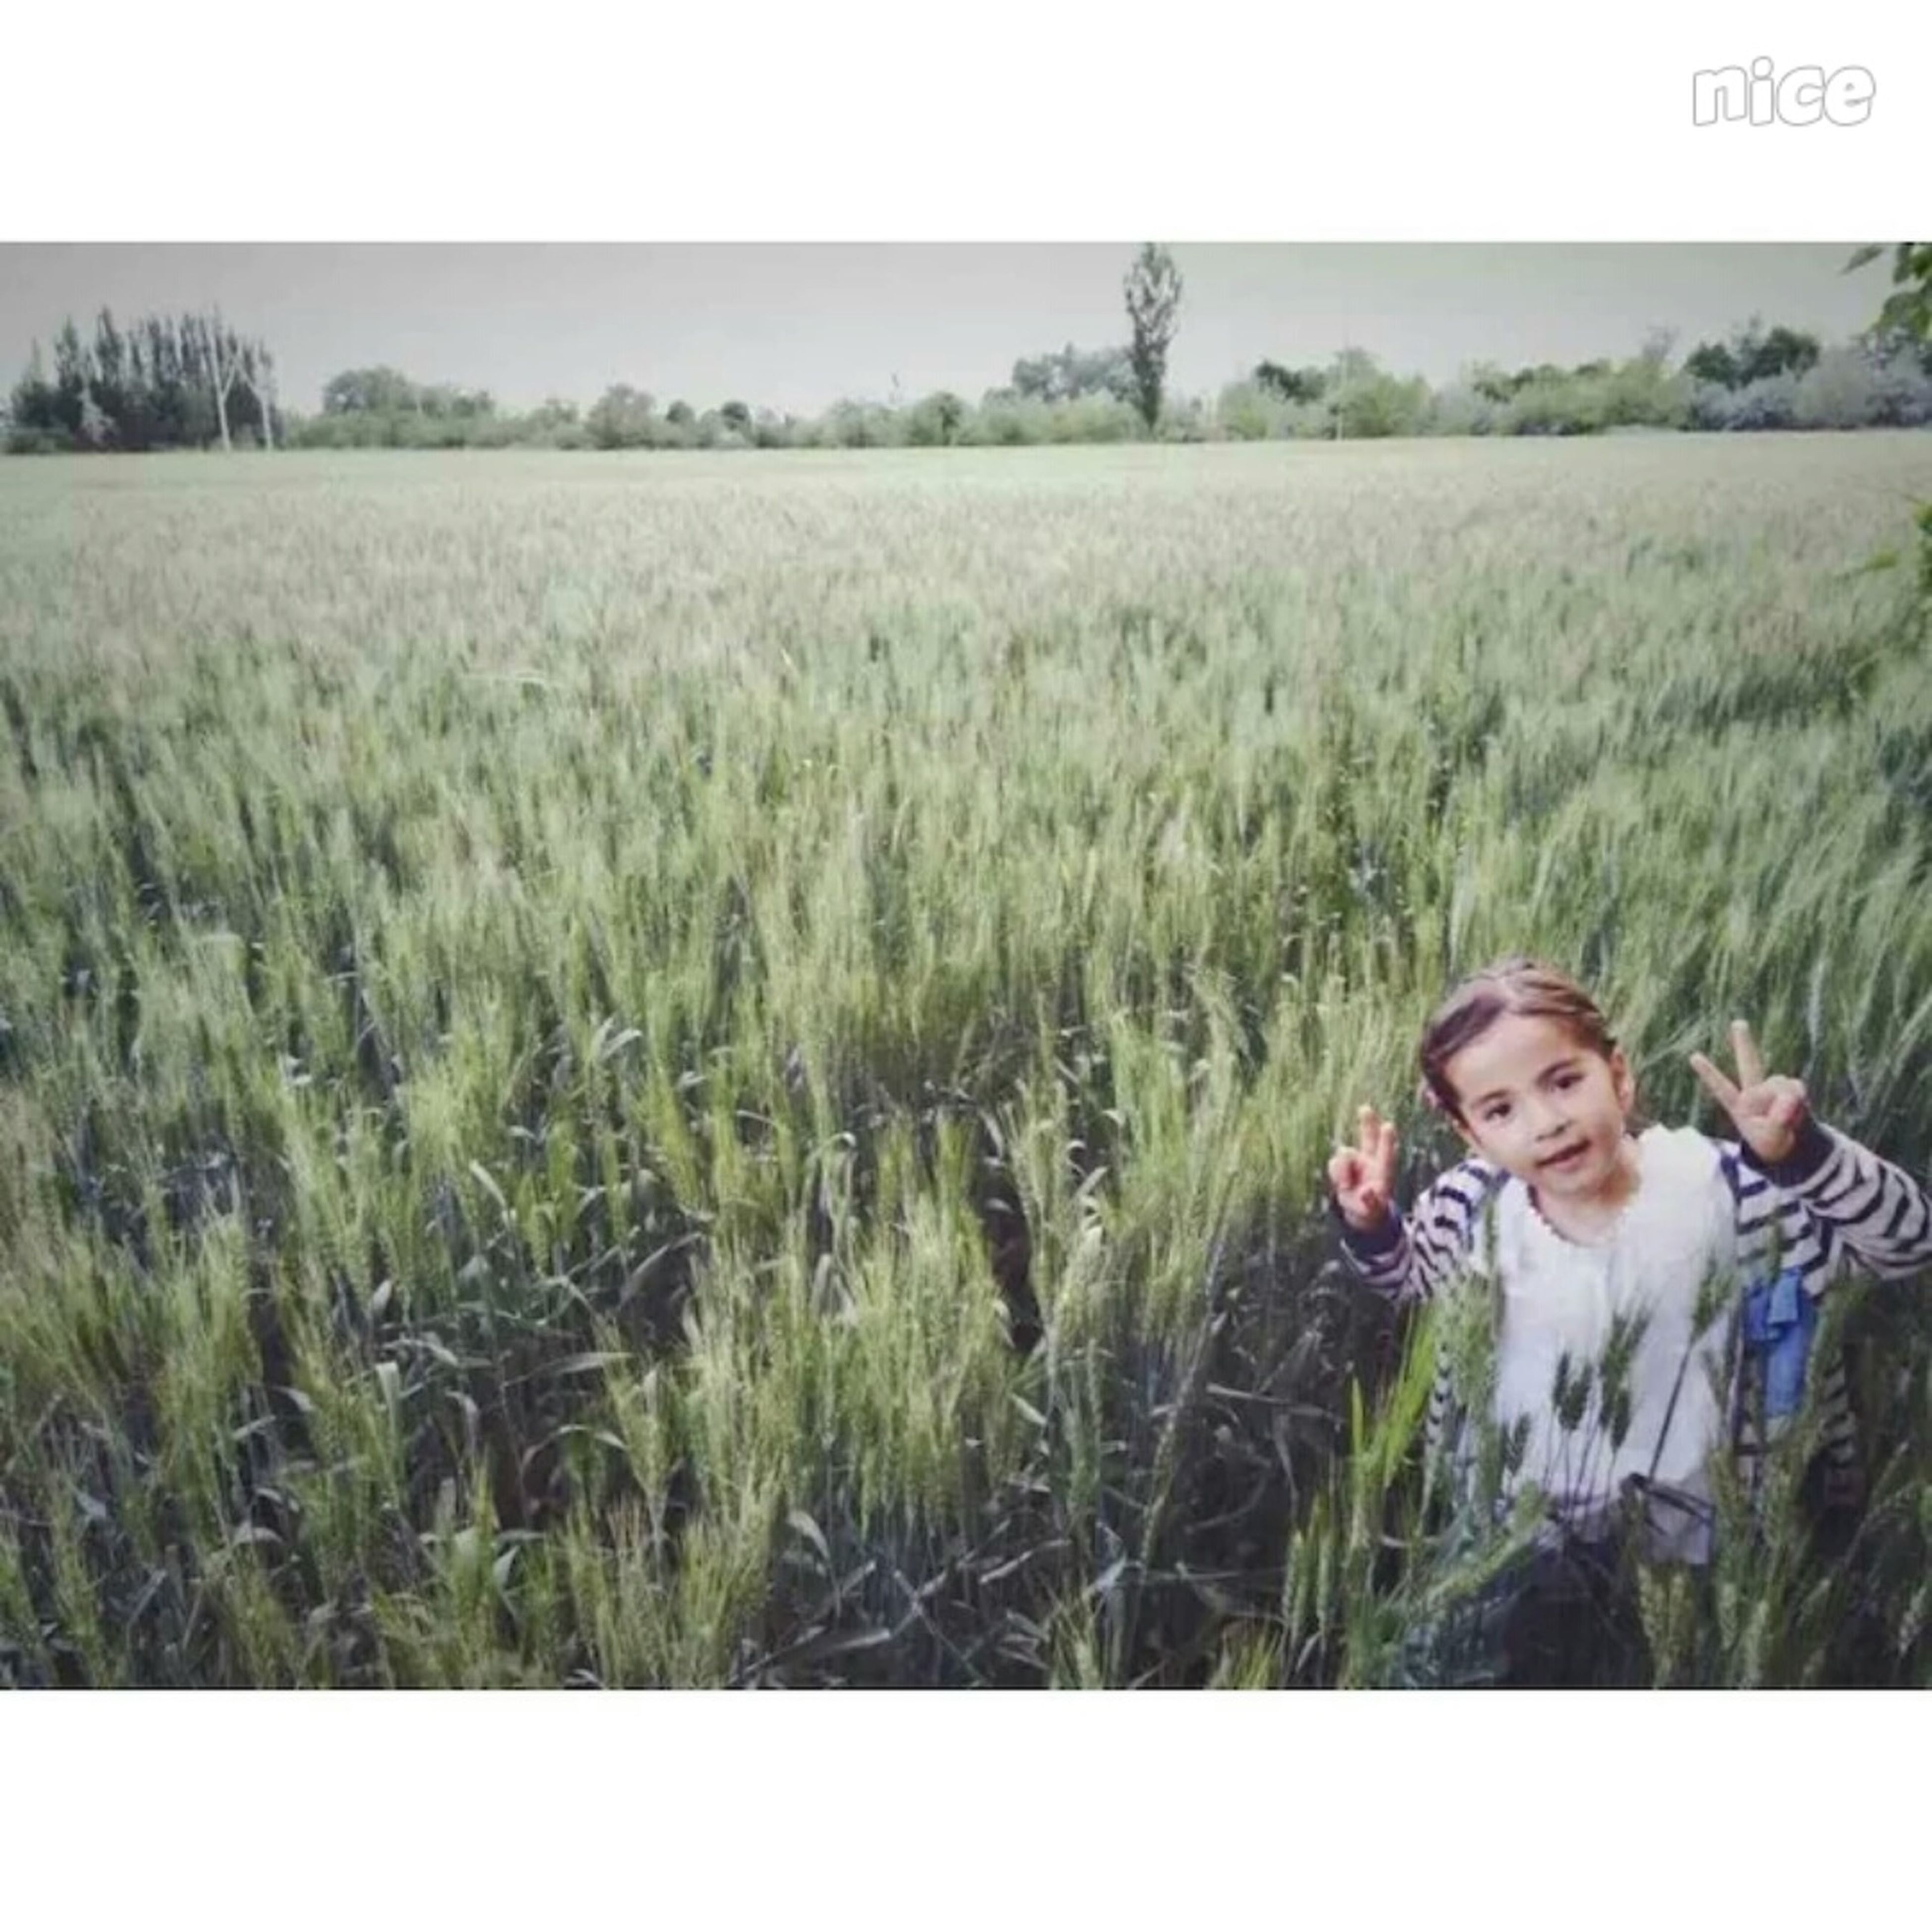 person, grass, field, lifestyles, casual clothing, young adult, leisure activity, portrait, transfer print, smiling, looking at camera, auto post production filter, elementary age, growth, front view, young women, green color, standing